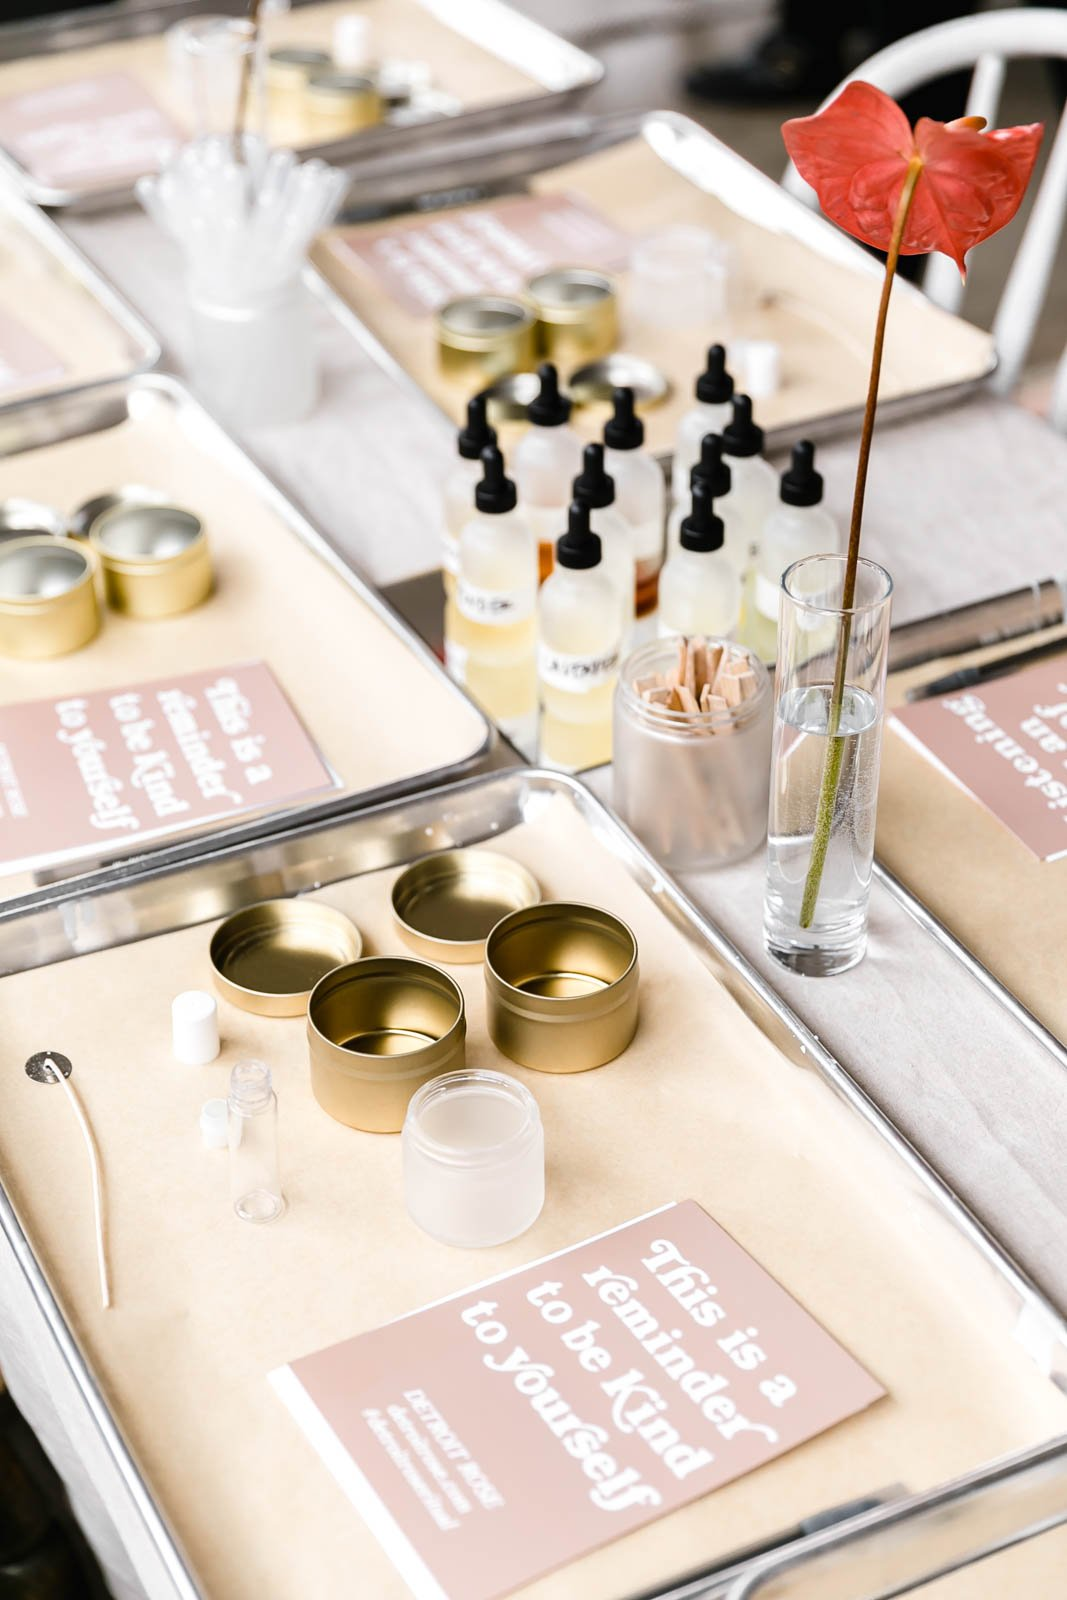 DIY face mask kits on a table